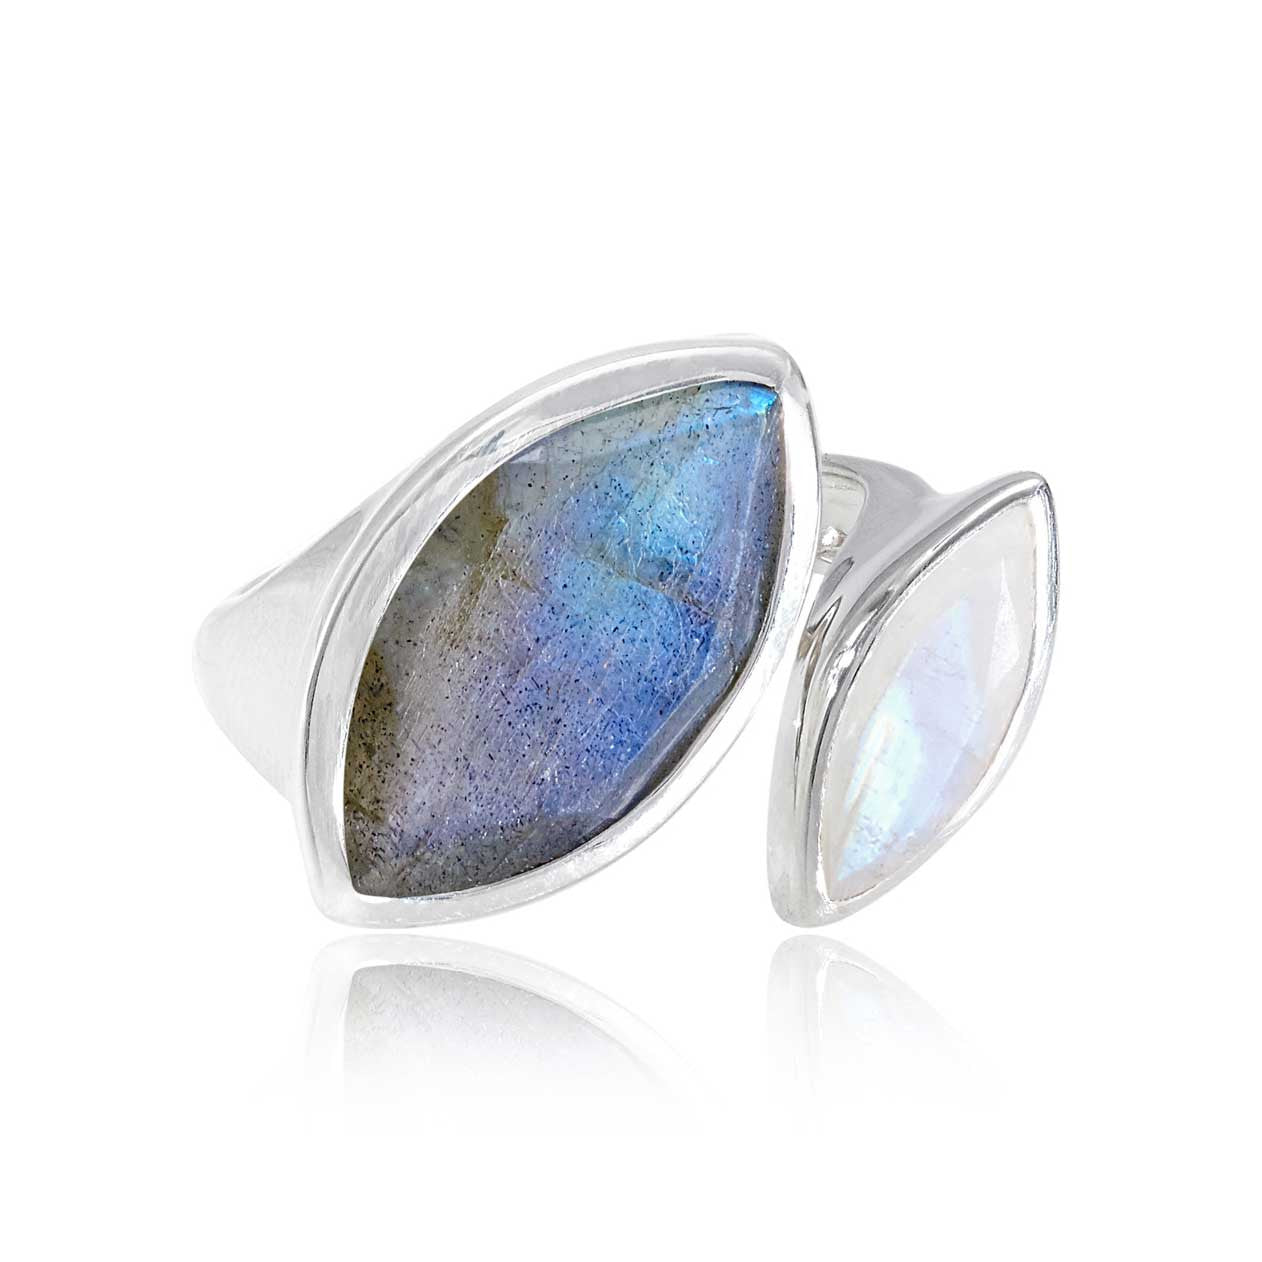 Silver cocktail ring, Labradorite and Rainbow Moonstone, geometric, unique British design